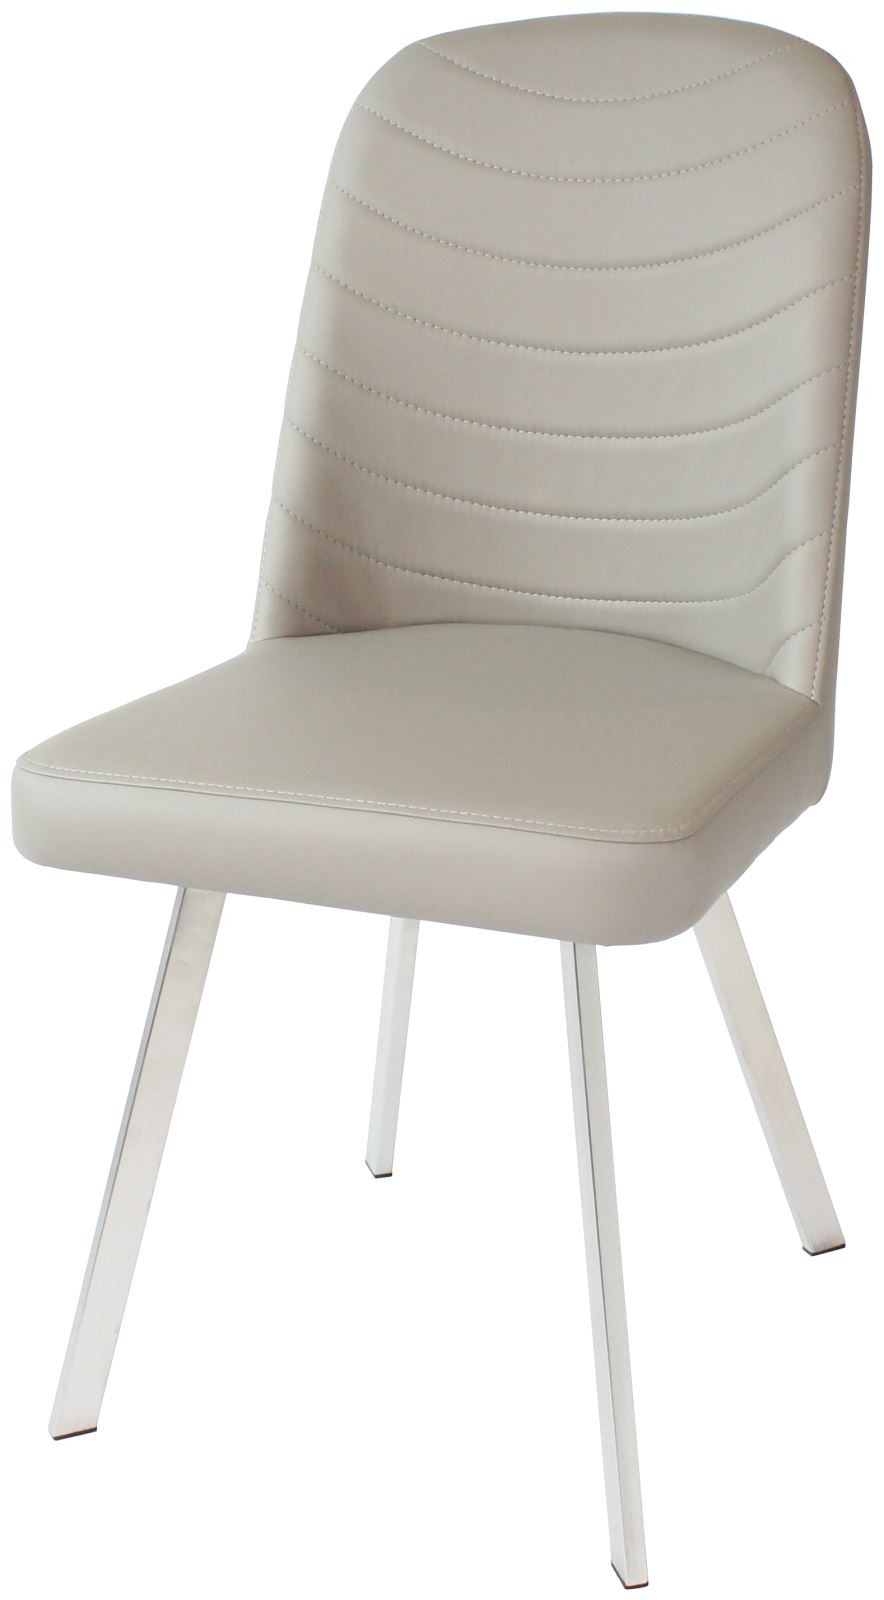 CONTEMPORARY Dining Chair - Cappuccino